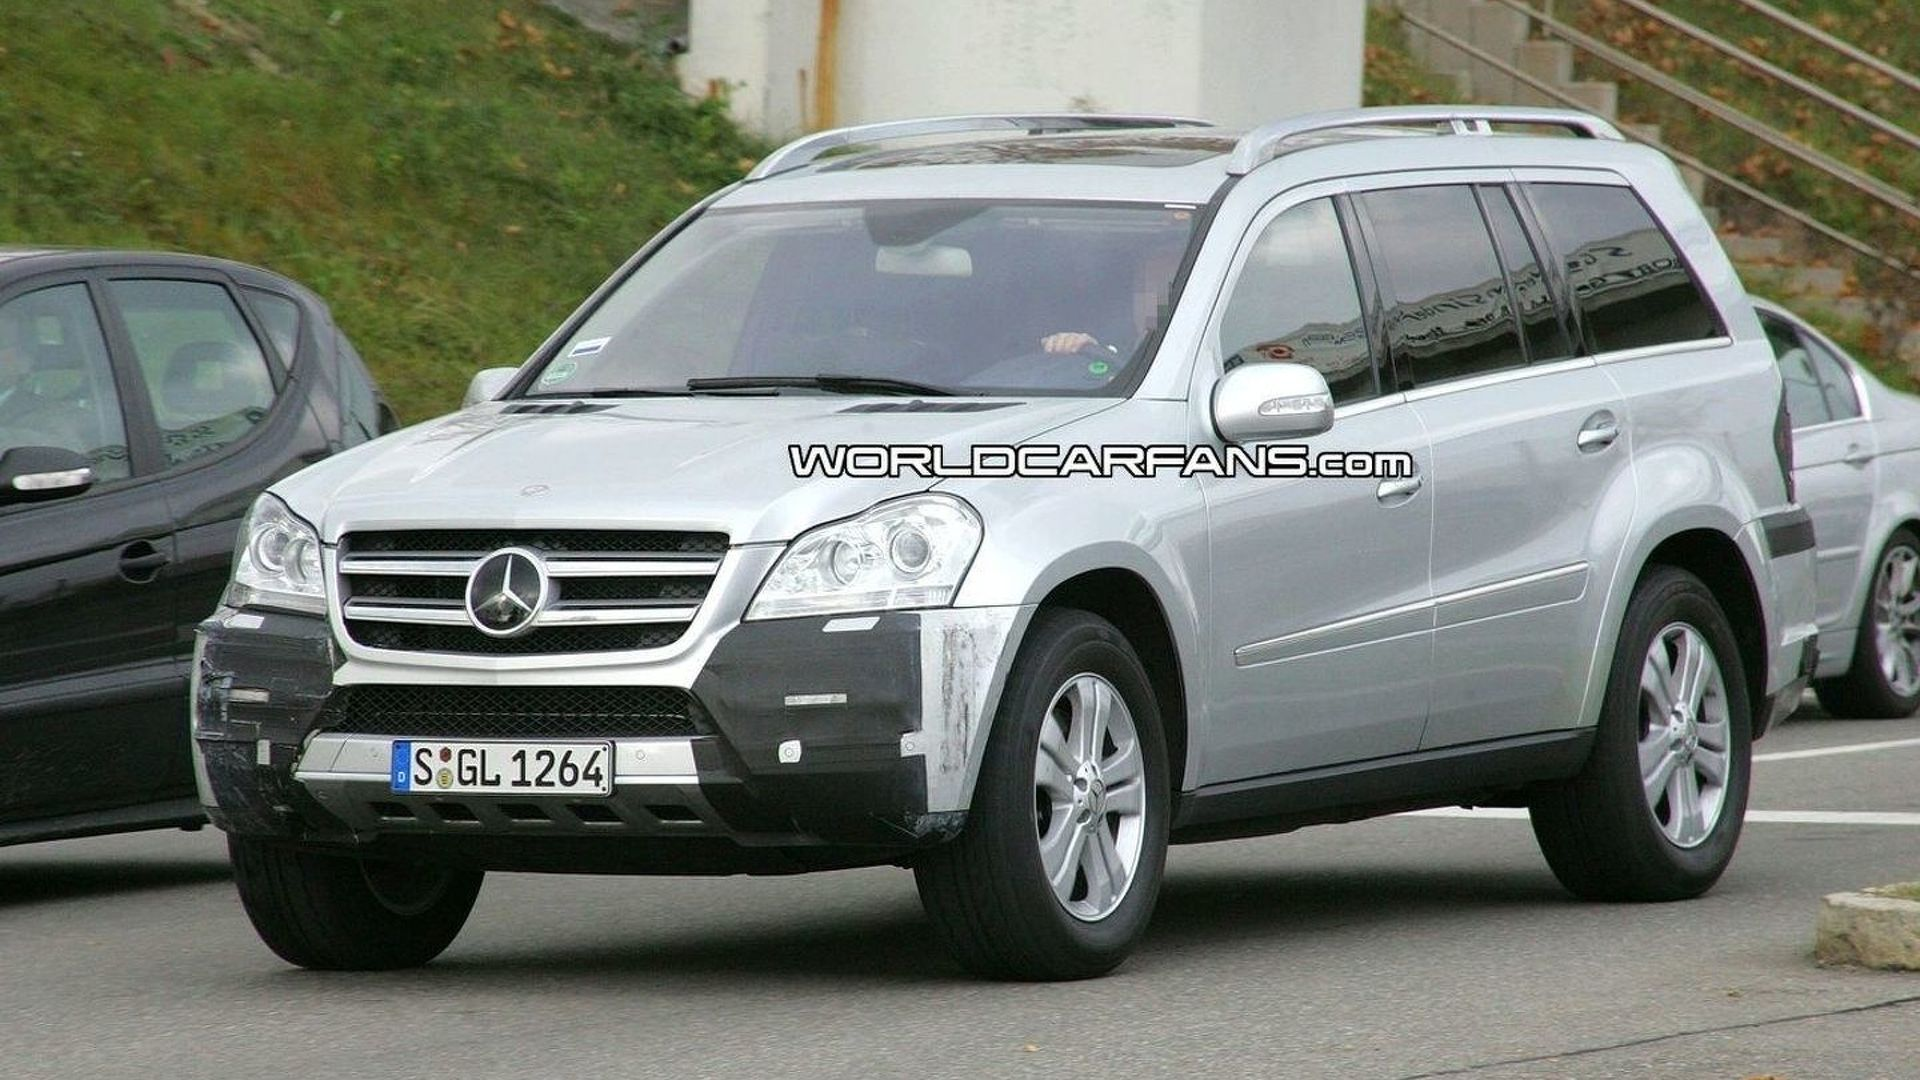 2010 Mercedes GL-Class Facelift - Why bother?